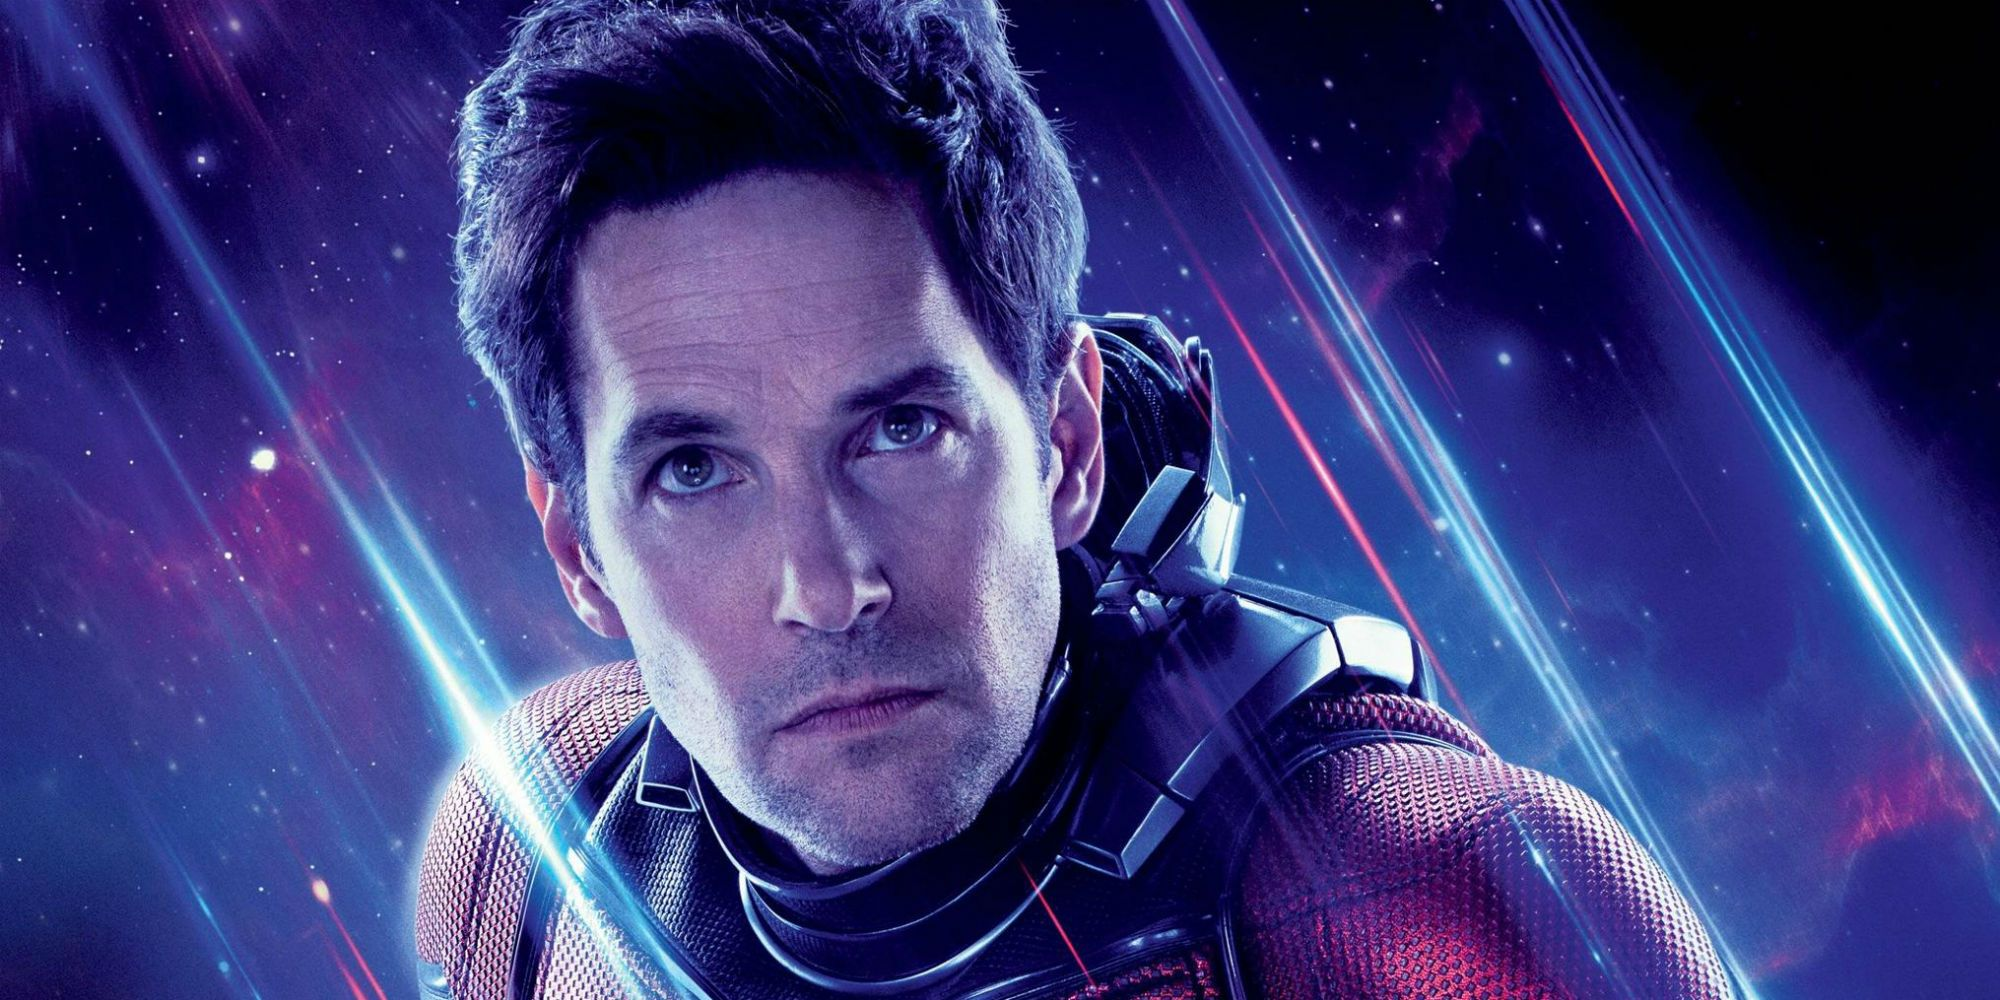 Ghostbusters 3 Casts Paul Rudd, Now Called Ghostbusters 2020